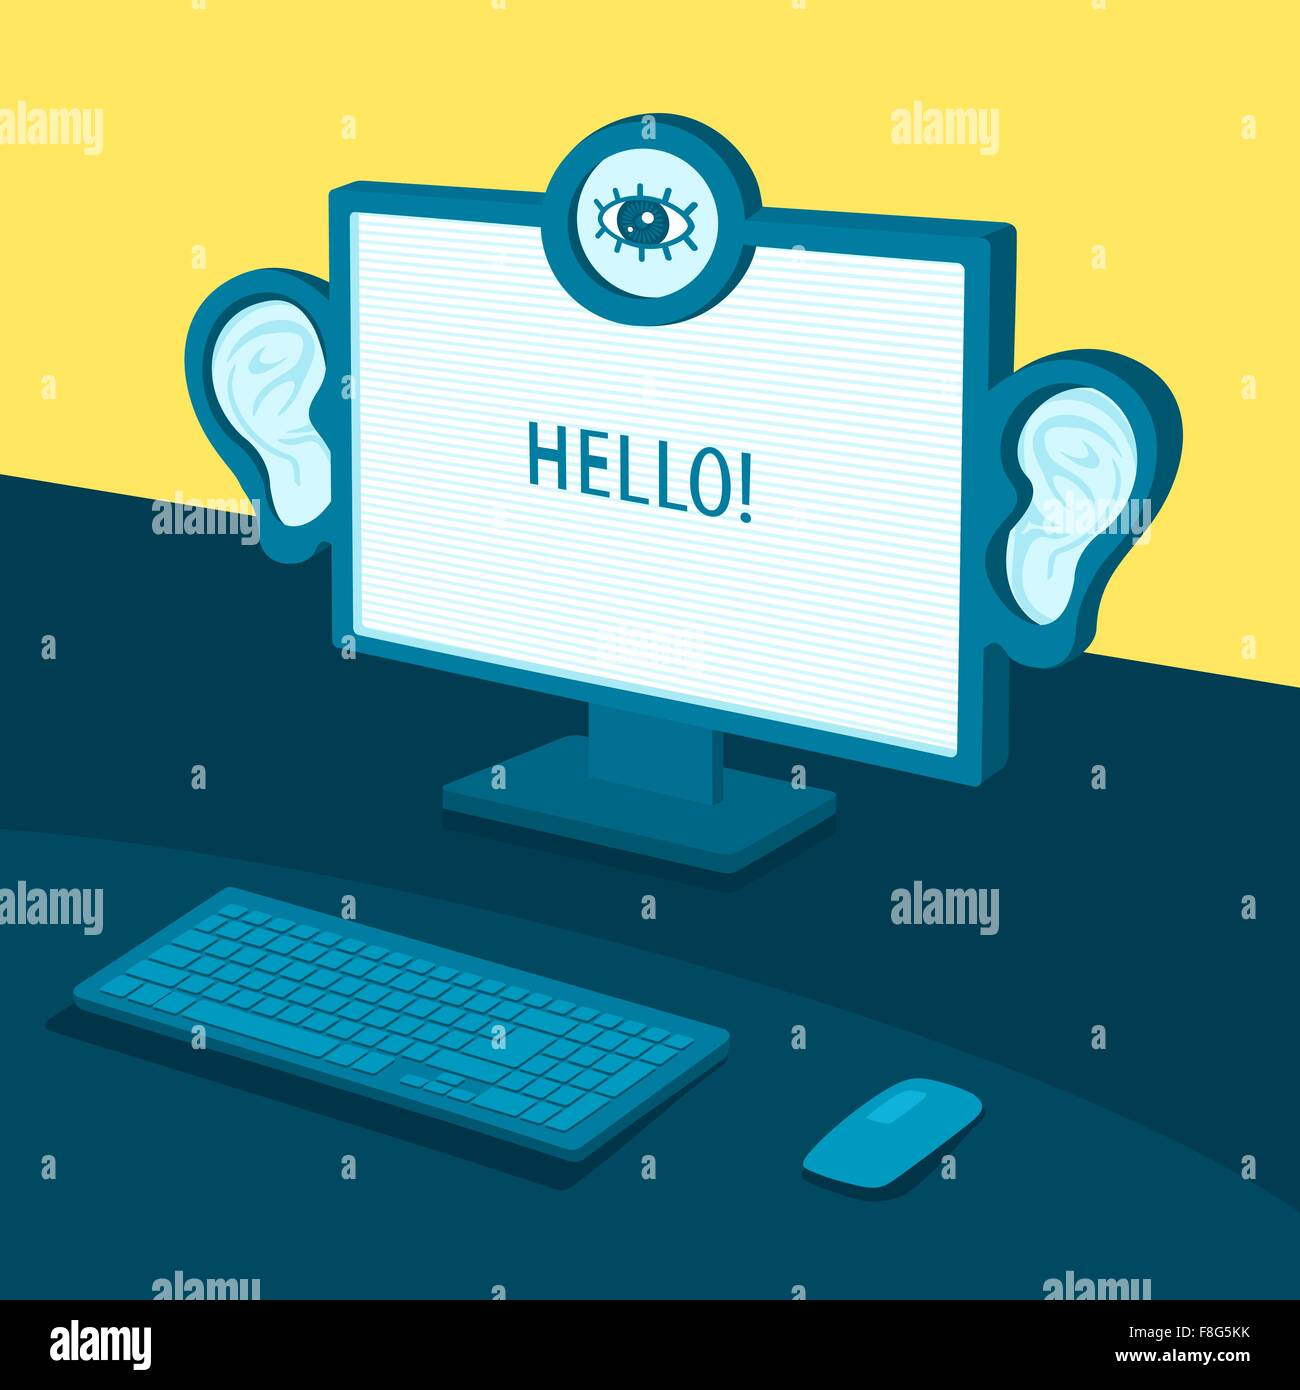 Computer spy on the user - Stock Vector